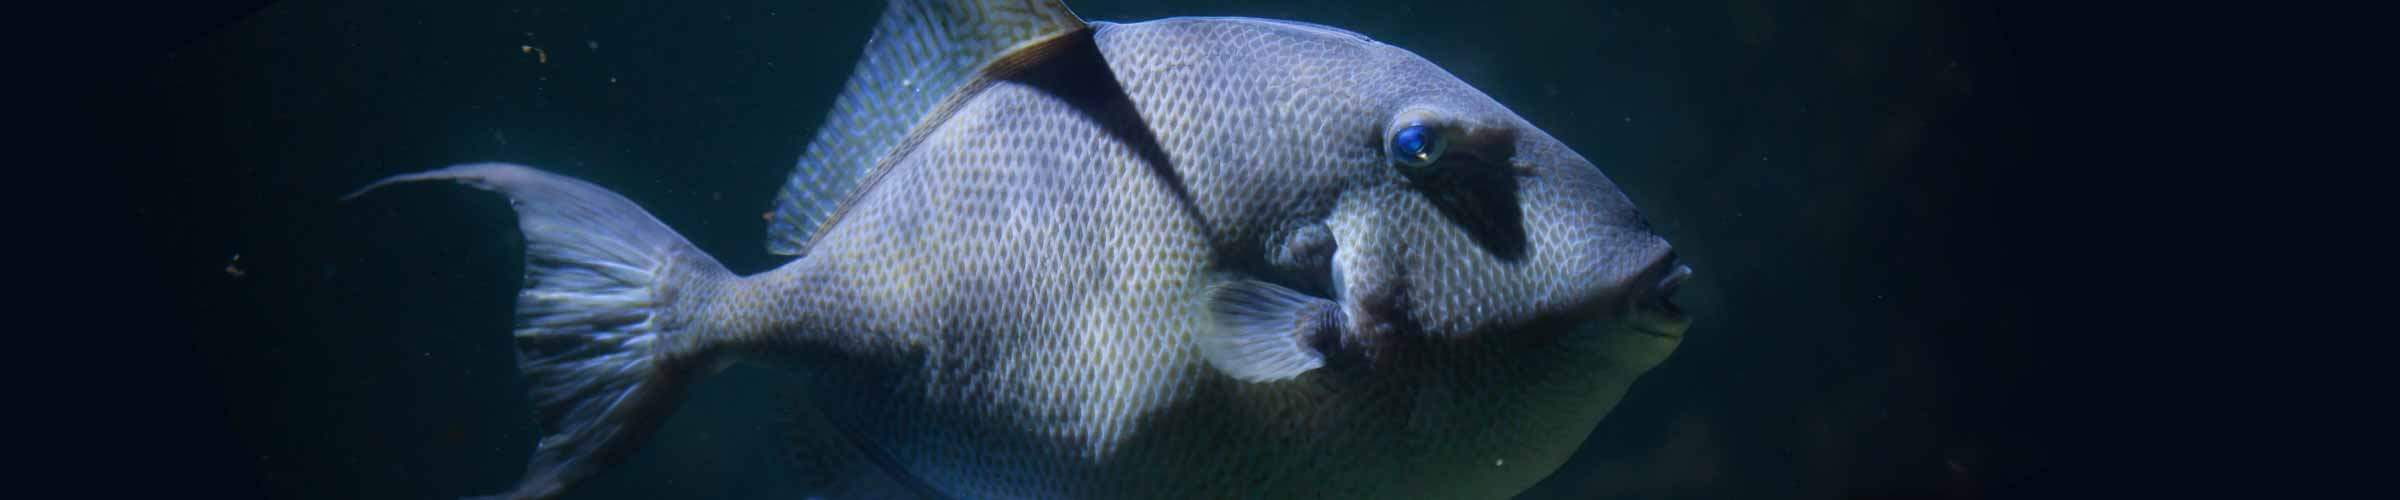 Gulf of Mexico Gray Triggerfish